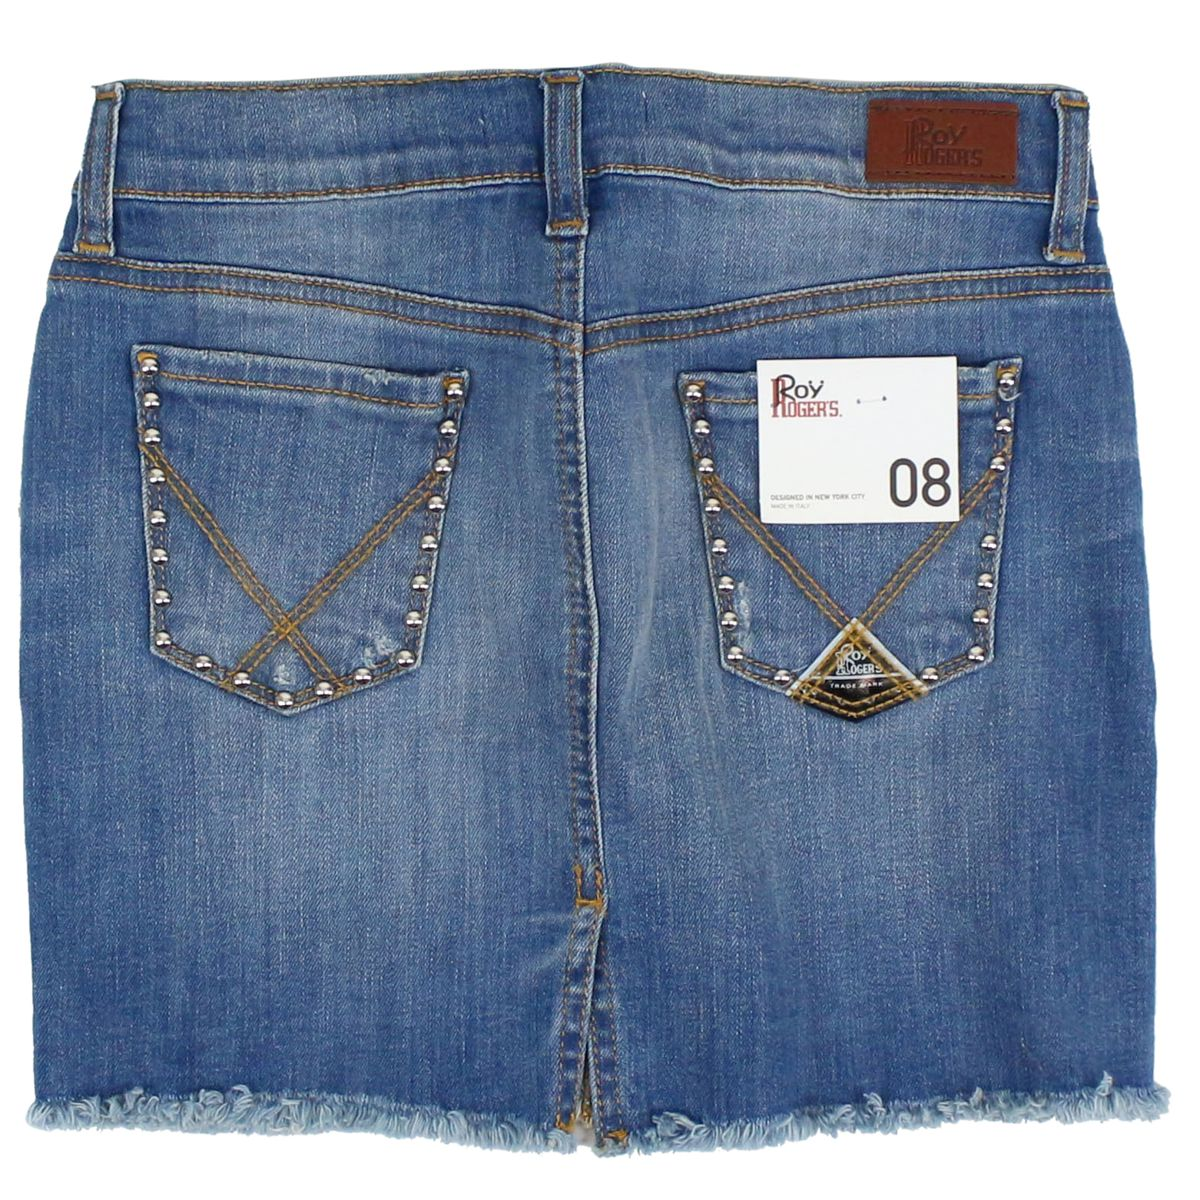 Rik Edge jeans skirt Medium denim Roy Roger's